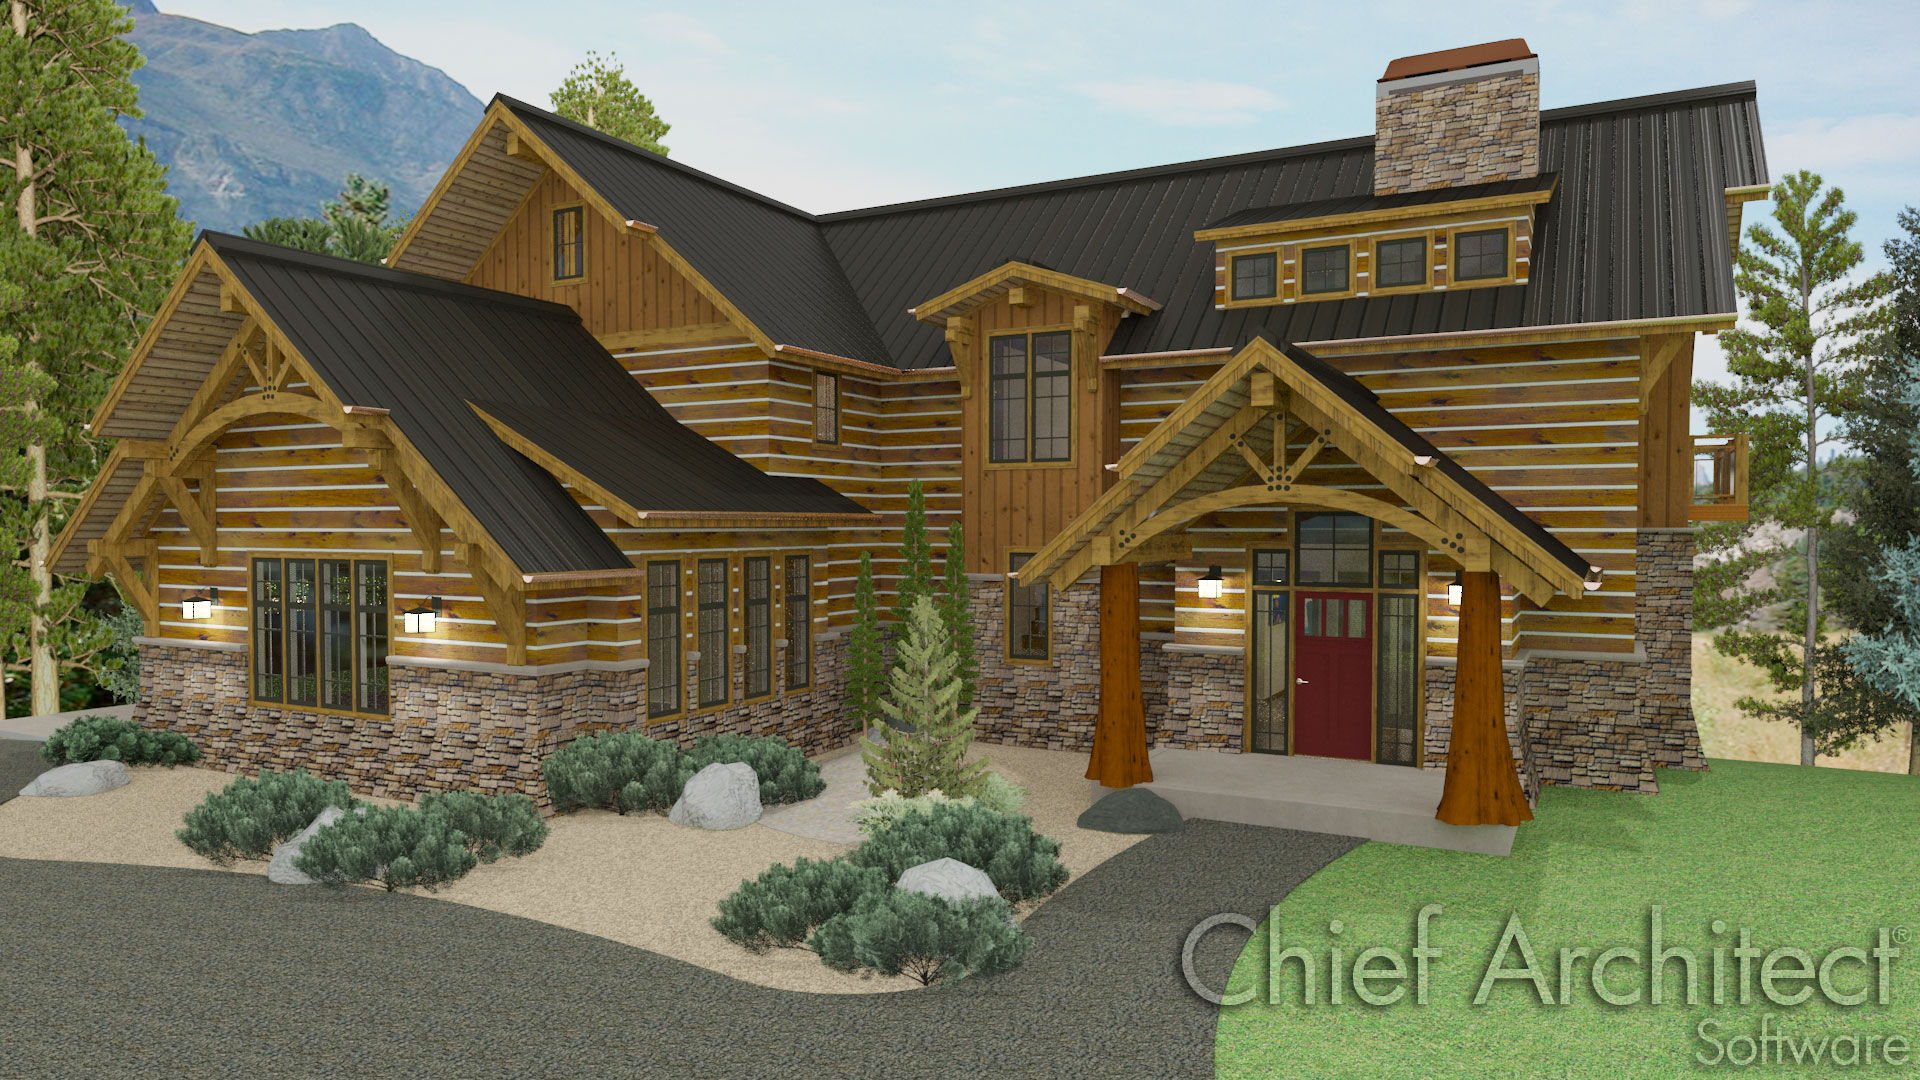 Chief Architect Home Design - Samples Gallery on small 1 story house designs, mcpe house designs, small chalet house designs, small camp house designs, 2015 house designs, small backyard house designs, tiny cottage home designs, small manufactured cottages, whimsical cottage house designs, small tree house designs, stone cottage house designs, small 2 story house designs, small lake house designs, small modern cottages, small homes and cottages, country cottage house designs, small modular house designs, small country house designs, narrow house designs, small house plans castle,